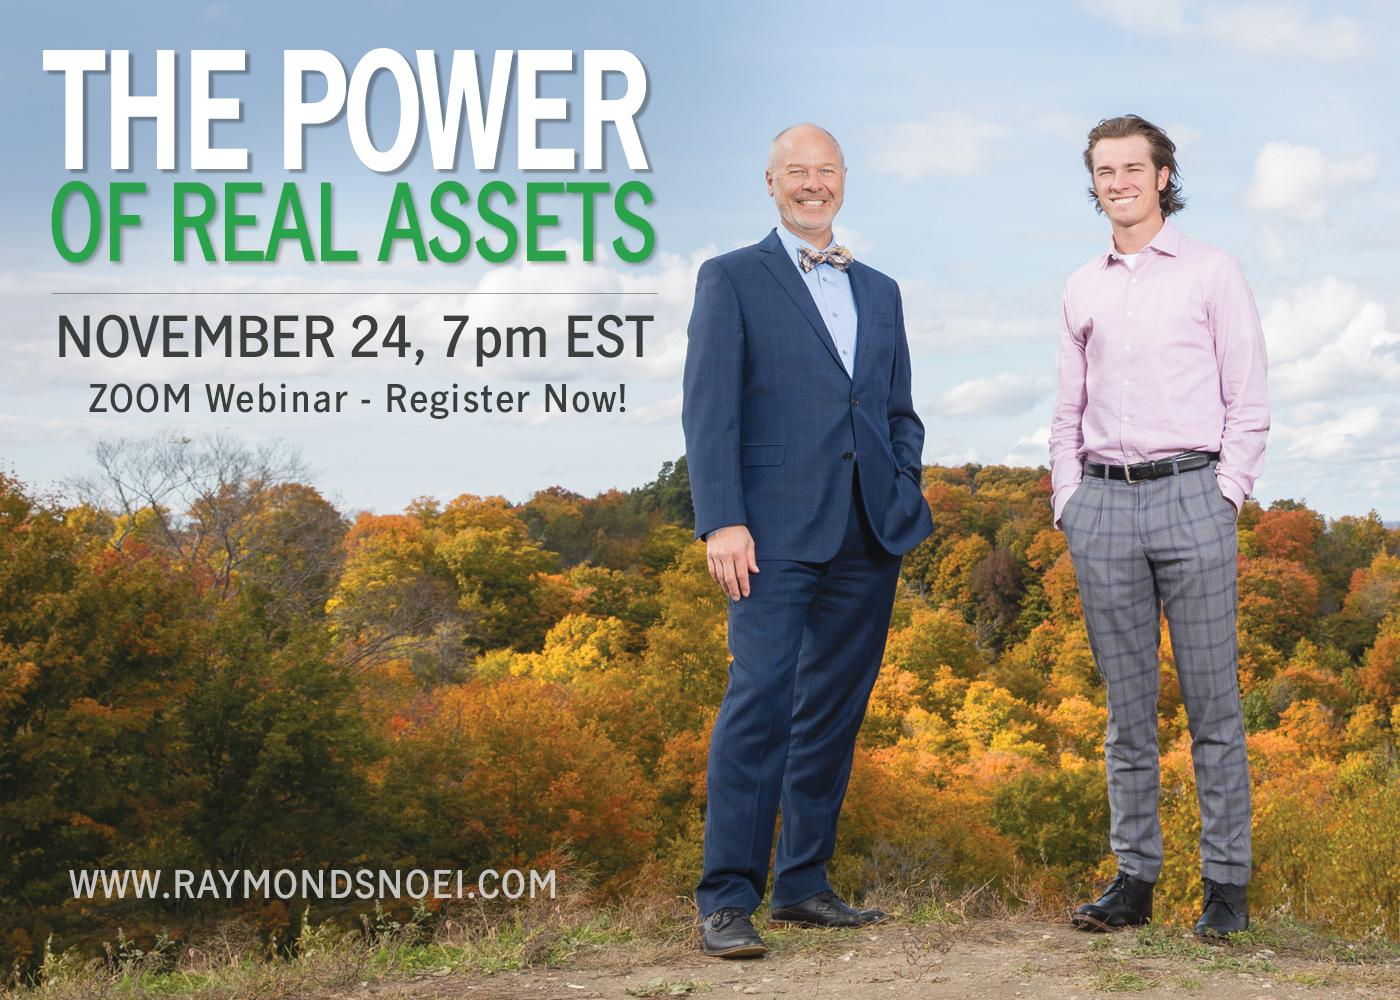 THE POWER OF REAL ASSETS - Expand your Investment Portfolio (webinar) Thumbnail